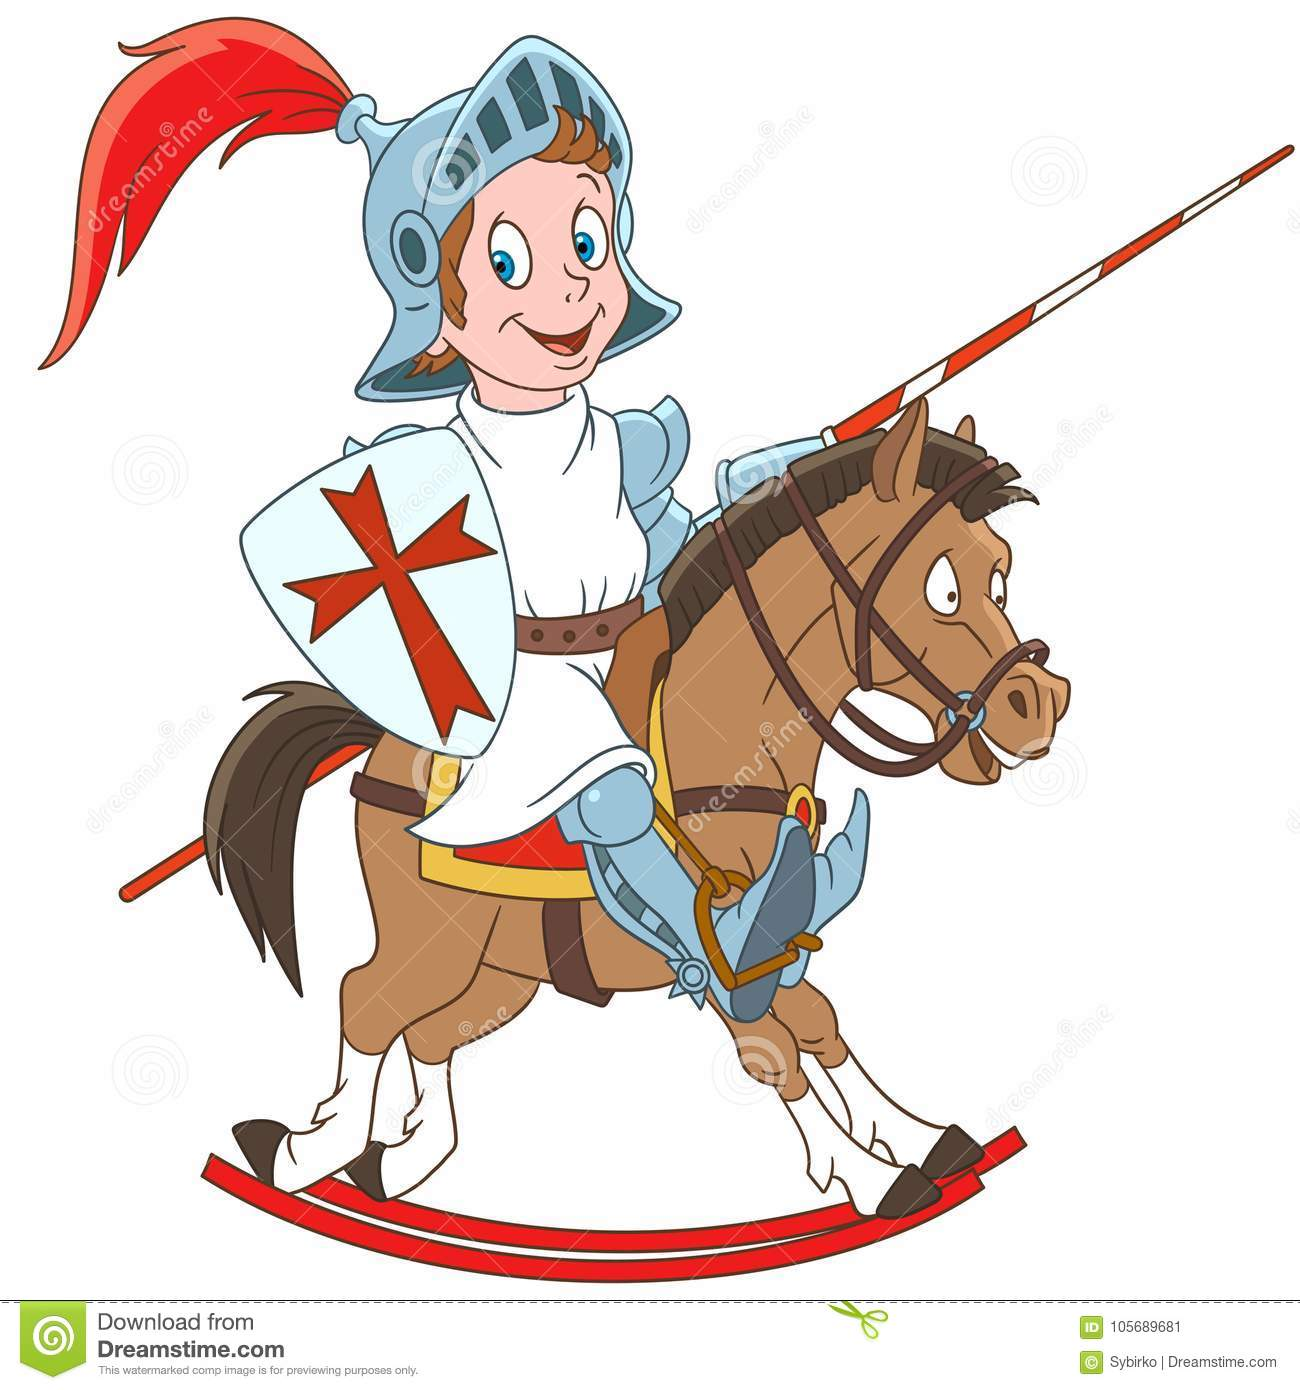 Cartoon Medieval Knight Riding A Horse Colorful Book Page Design For Kids And Children